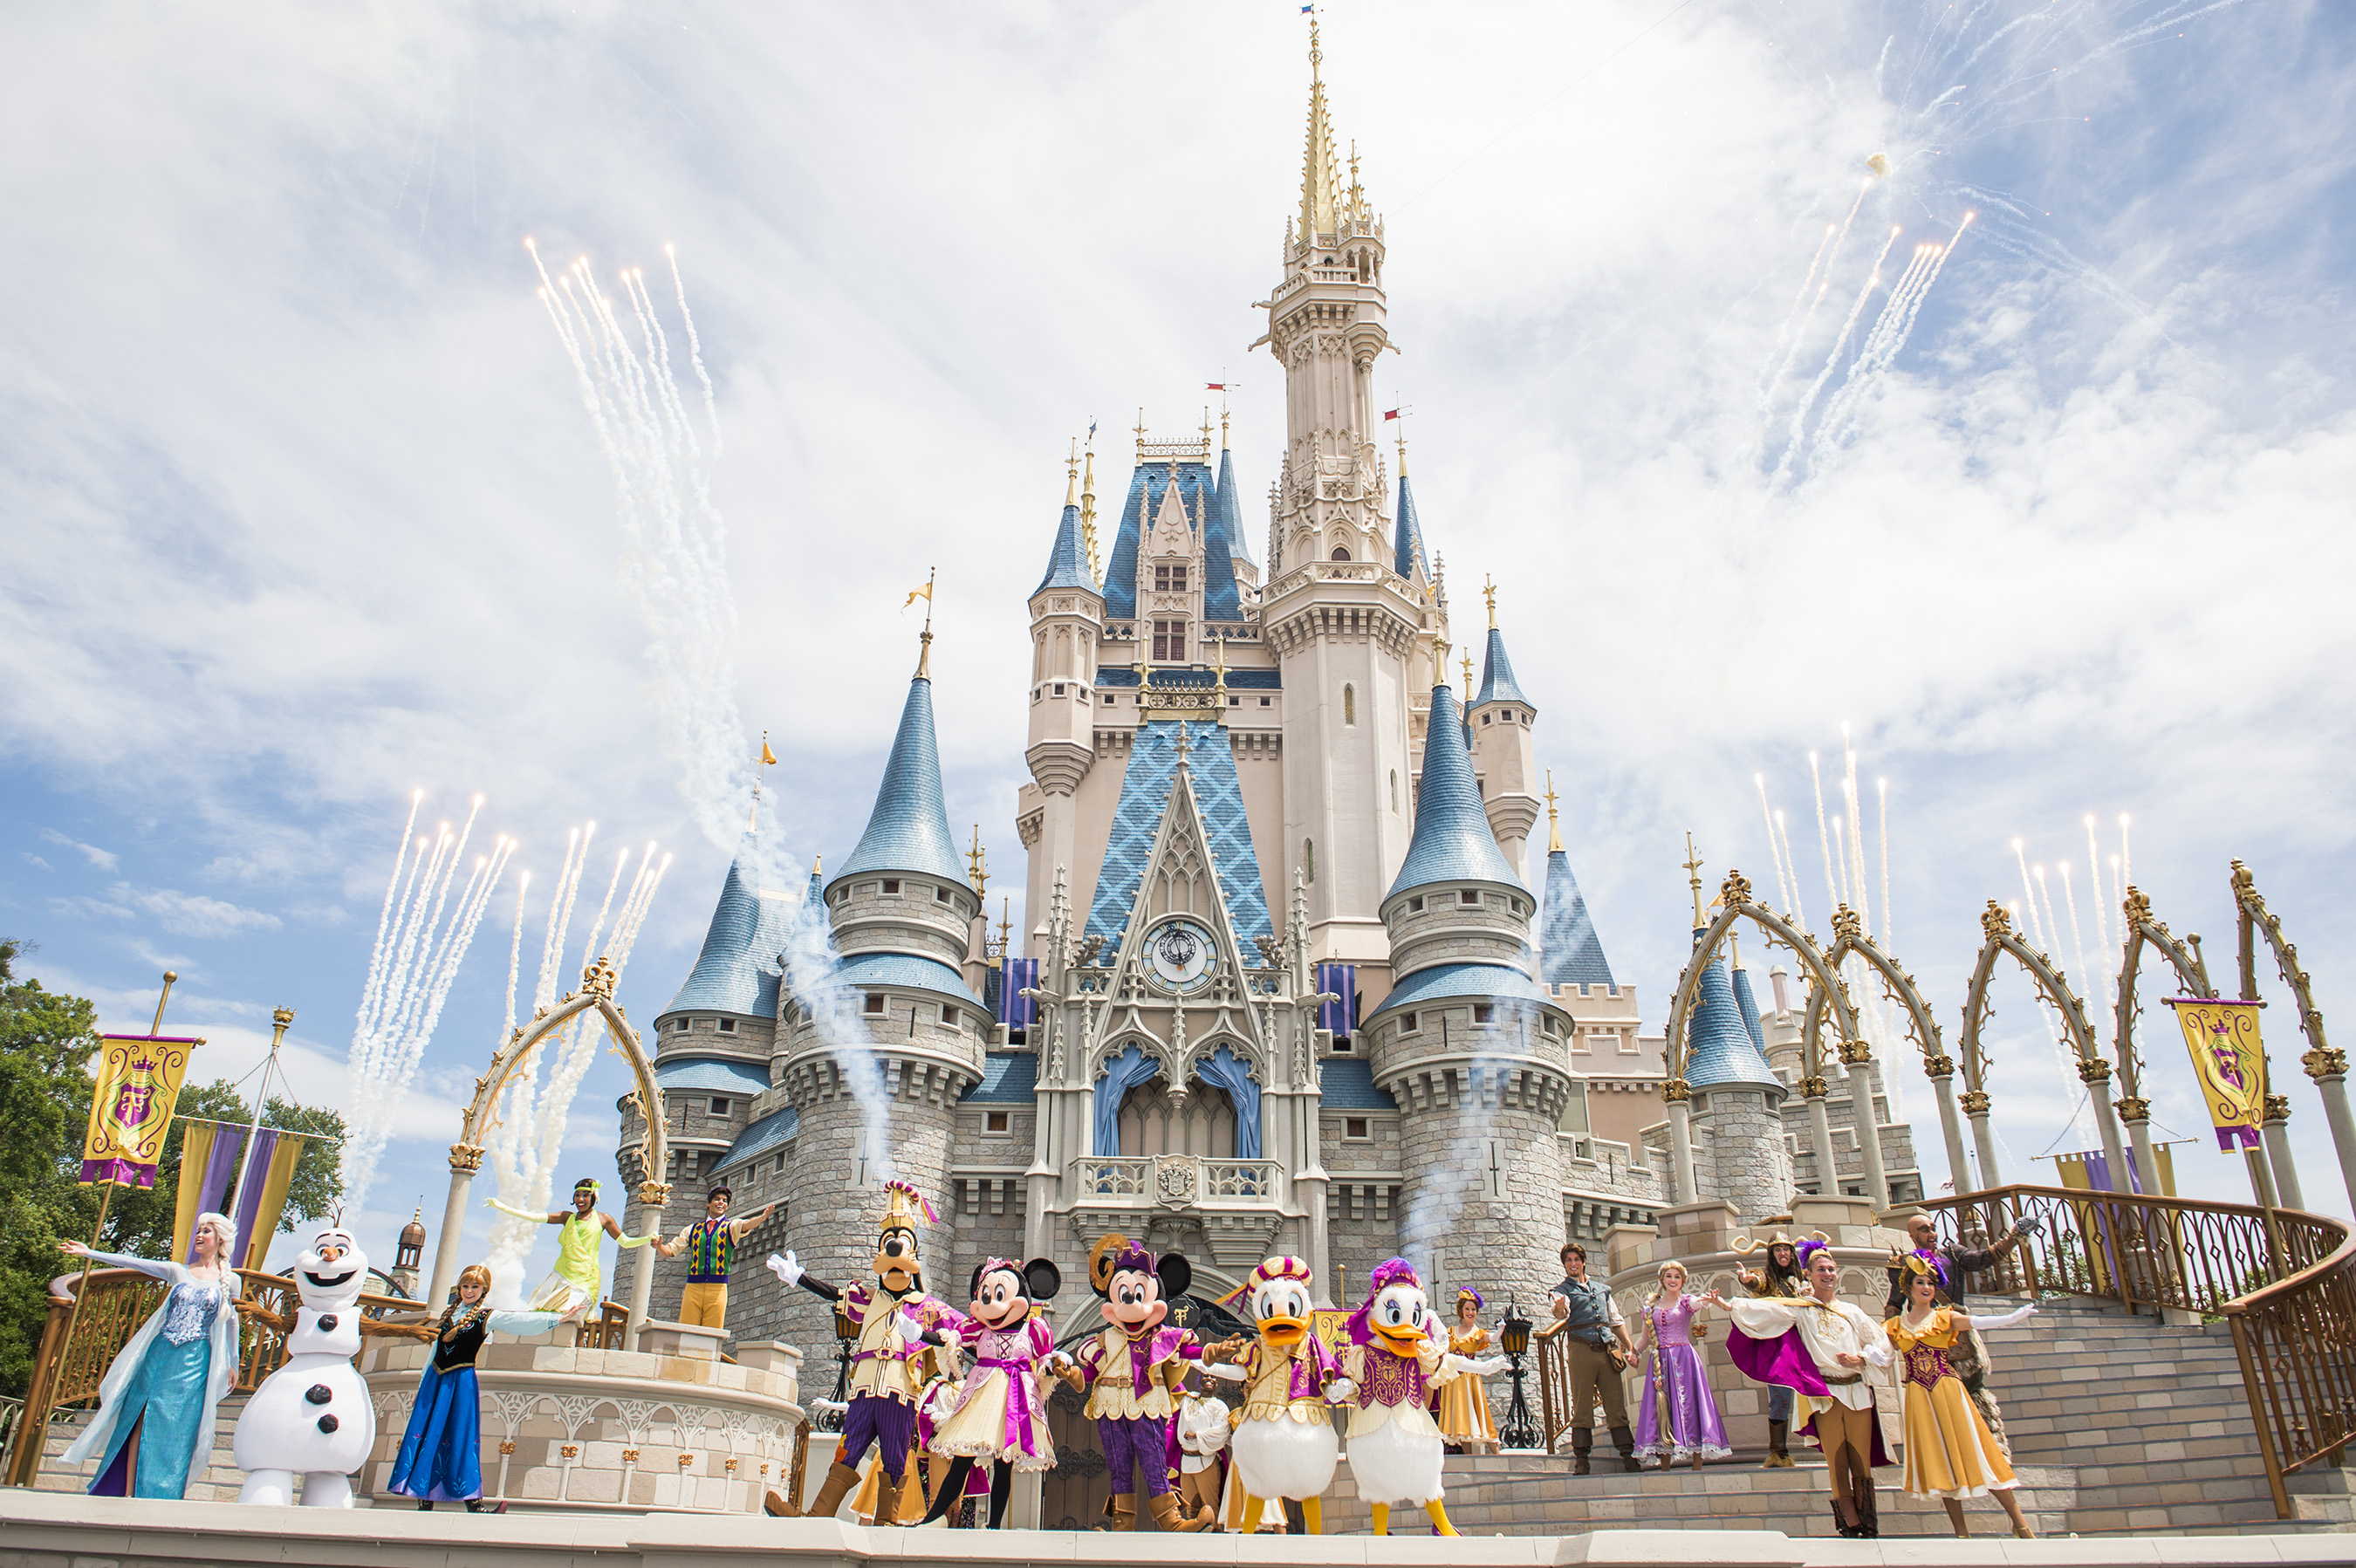 Summer savings on disney 4 park magic ticket and more recommend walt disney world resort is offering a special 4 park magic ticket that allows guests publicscrutiny Image collections